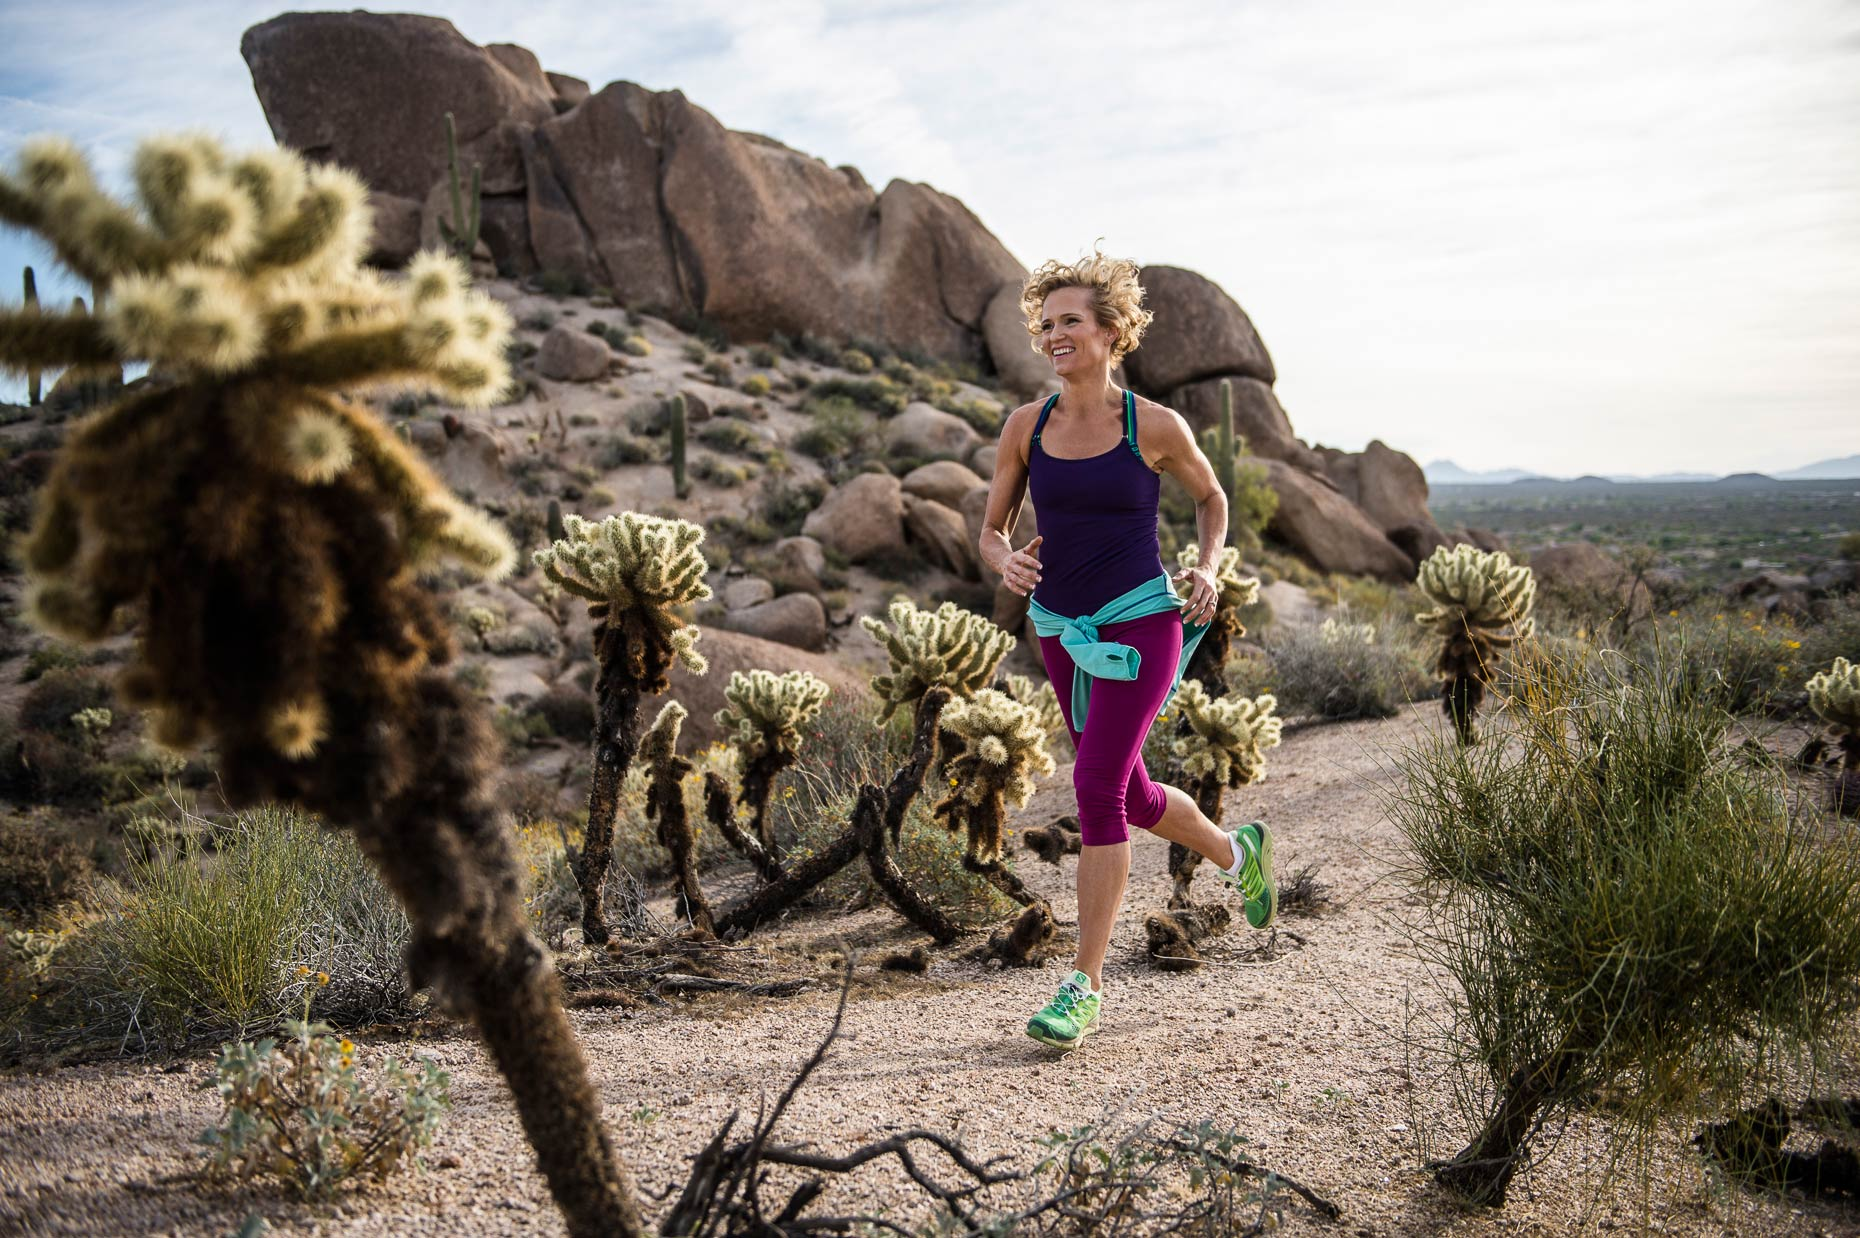 Sports Photography - Trail Running In the Arizona Hills